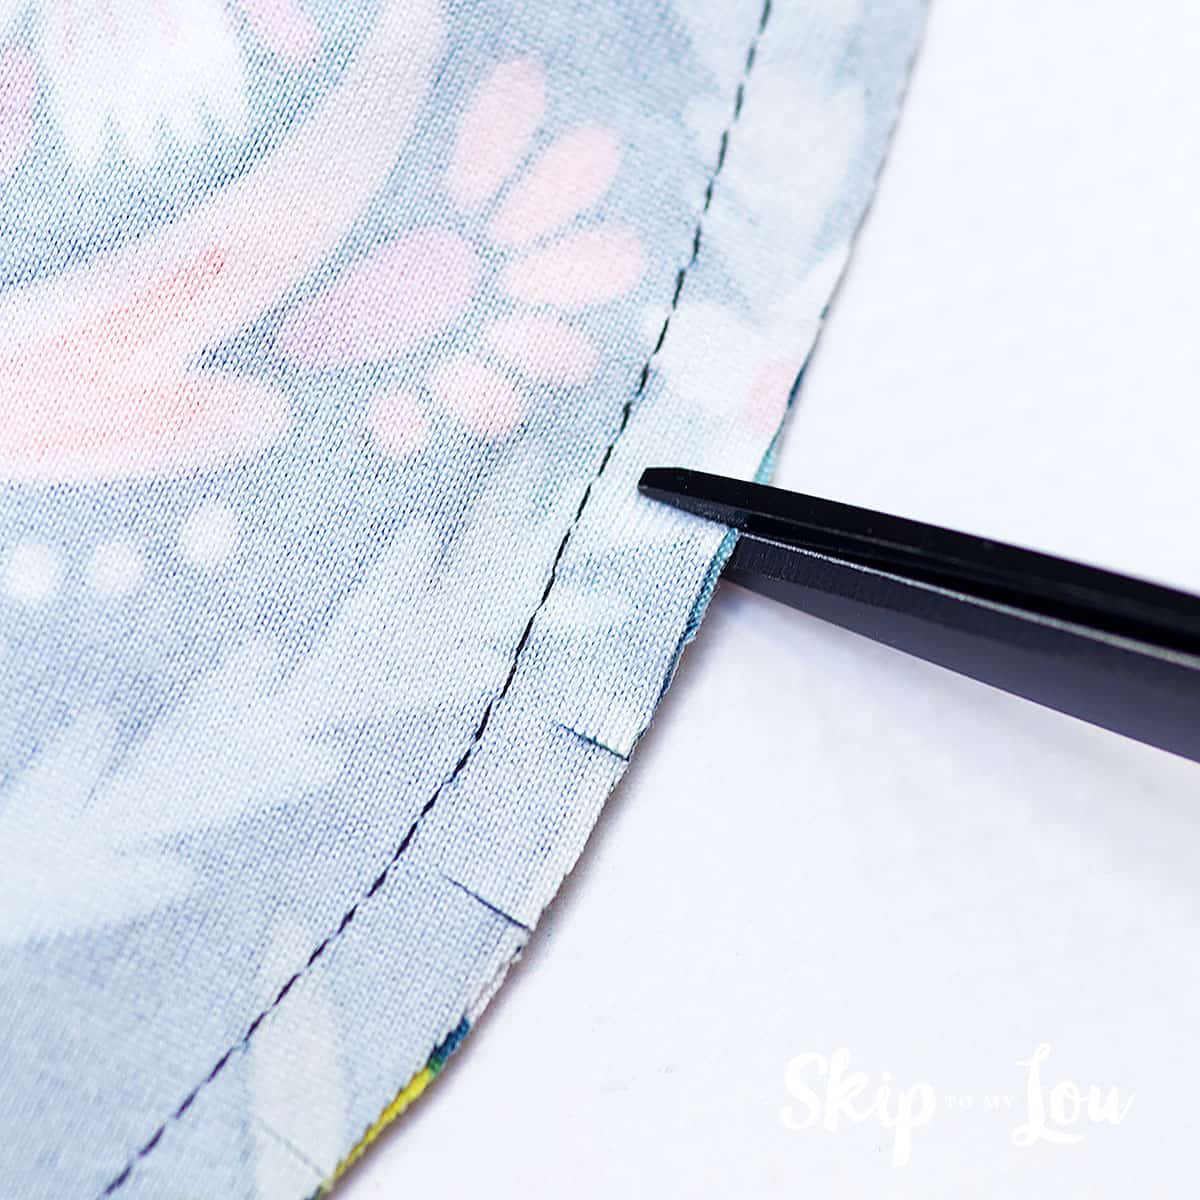 clip curved edge with scissors